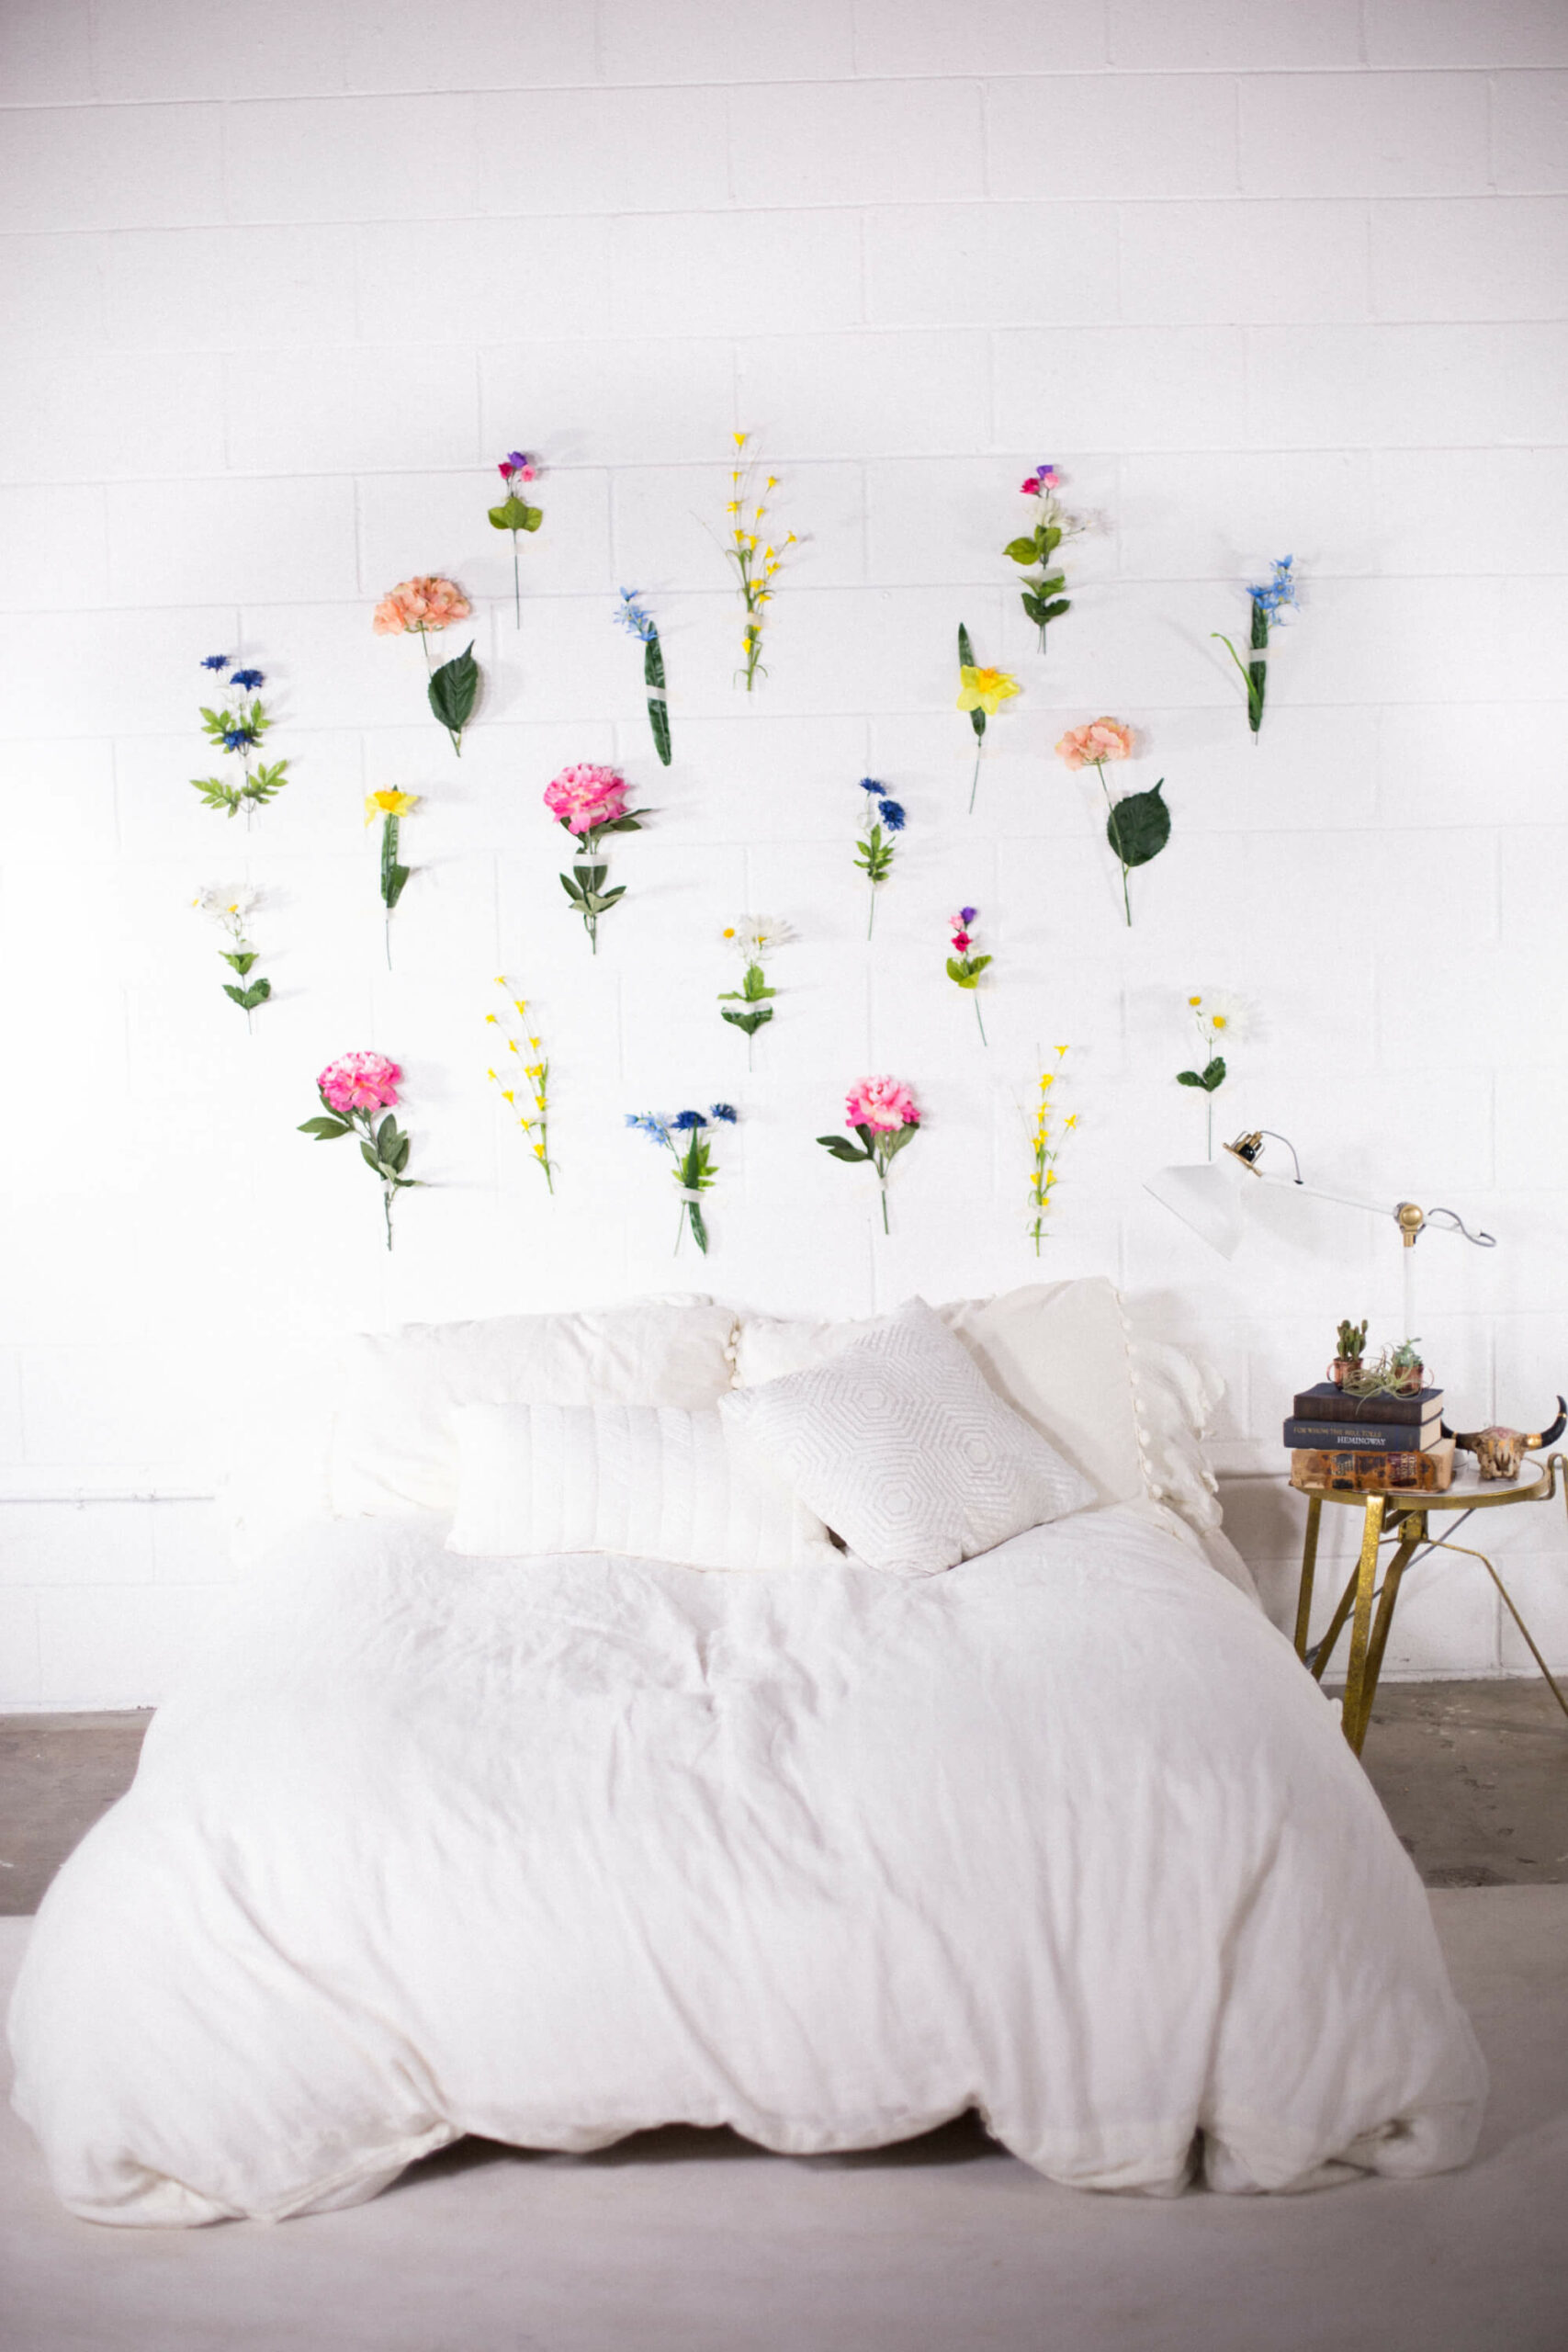 Craft a Flower Wall